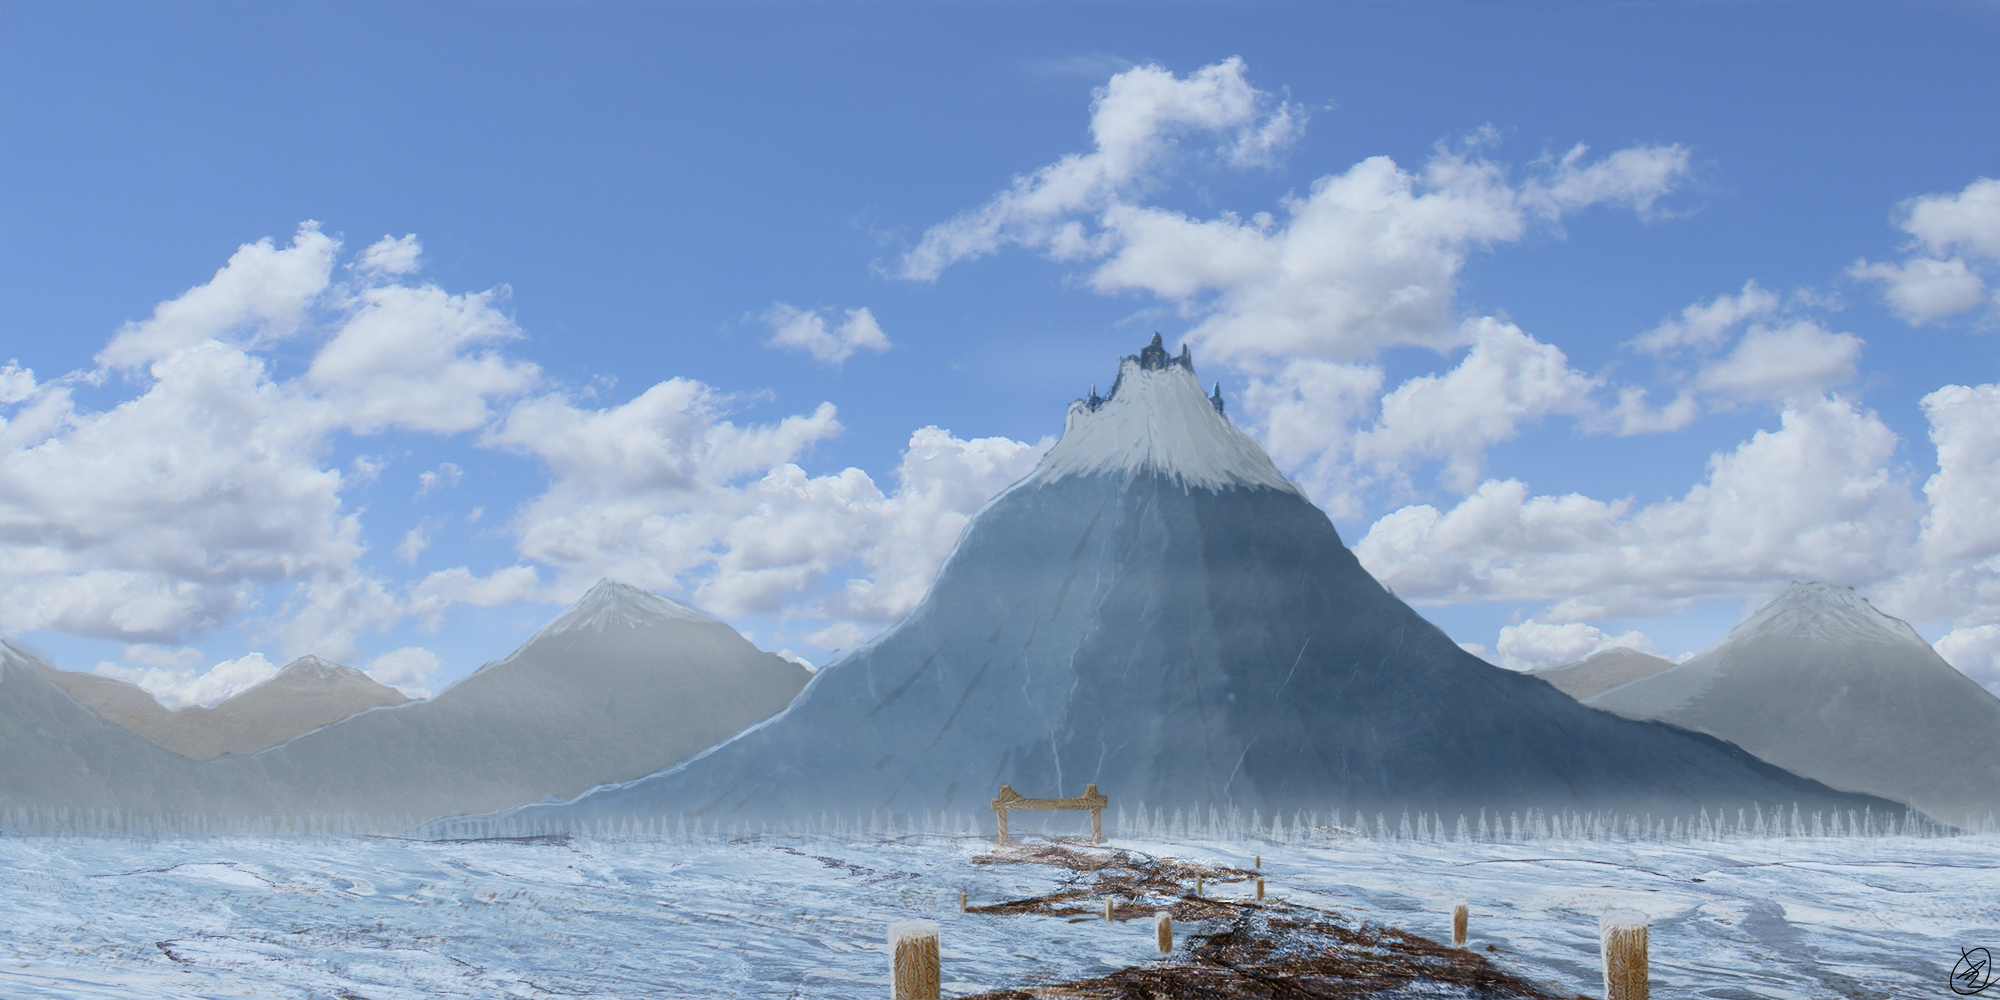 Gateway to the Ice Citadel by wildspark